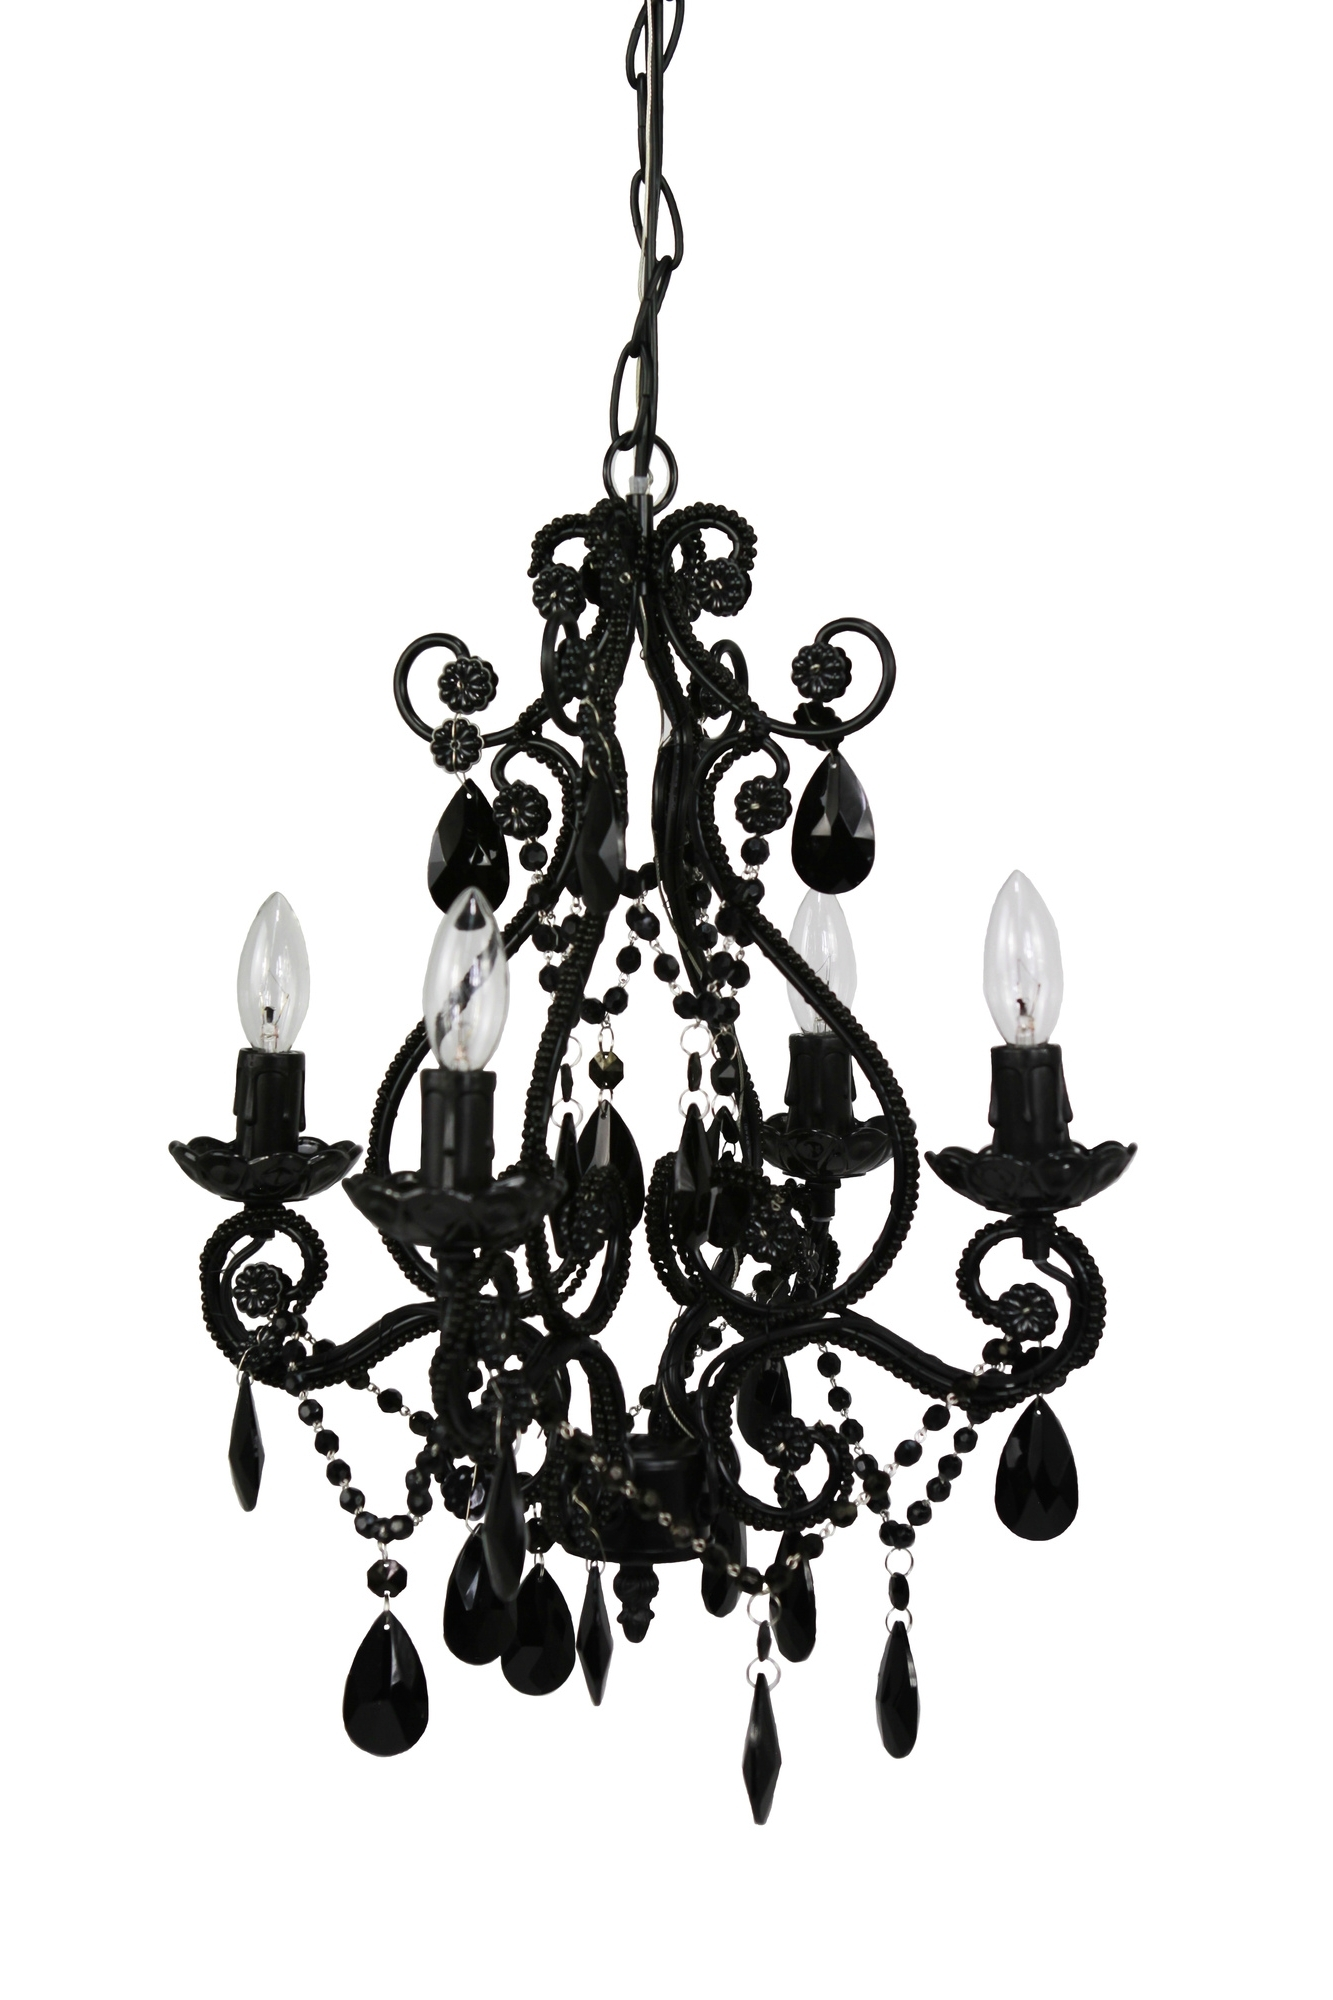 Cheap Chandelier, Chandeliers And Modern pertaining to Widely used Black Chandeliers